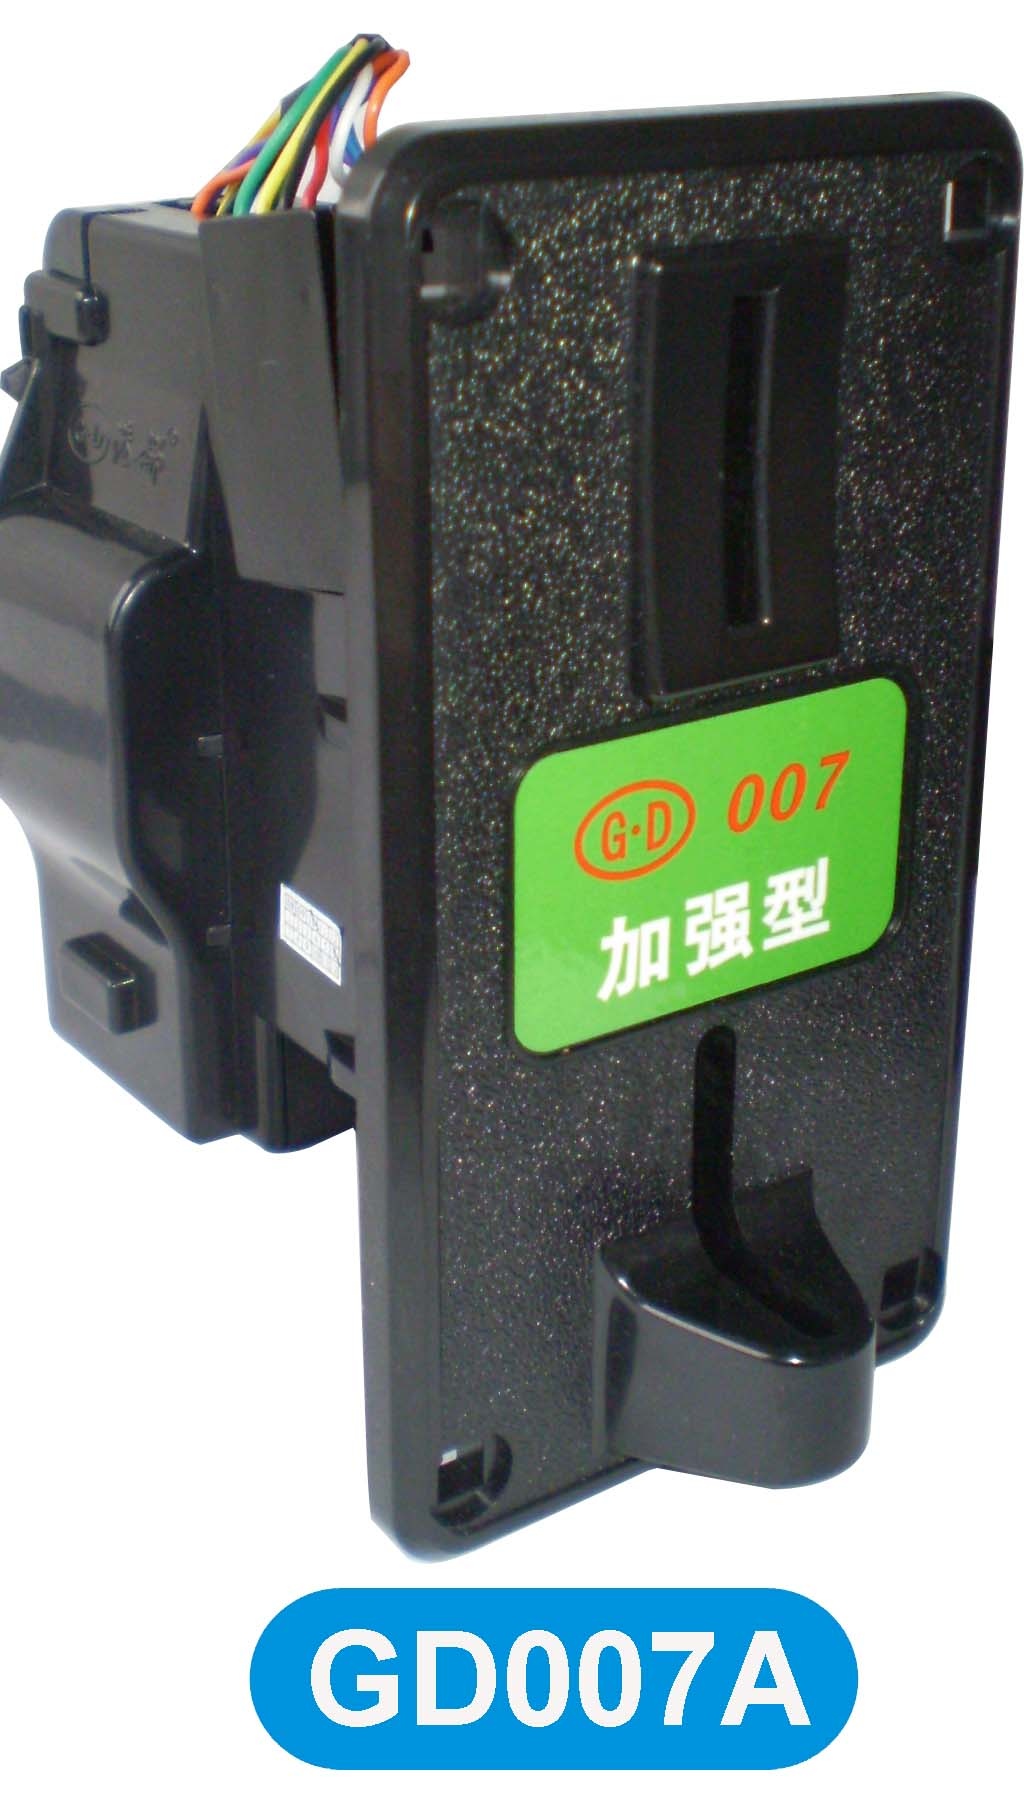 GD007A GD Intelligent coin acceptor  ,coin selector validators